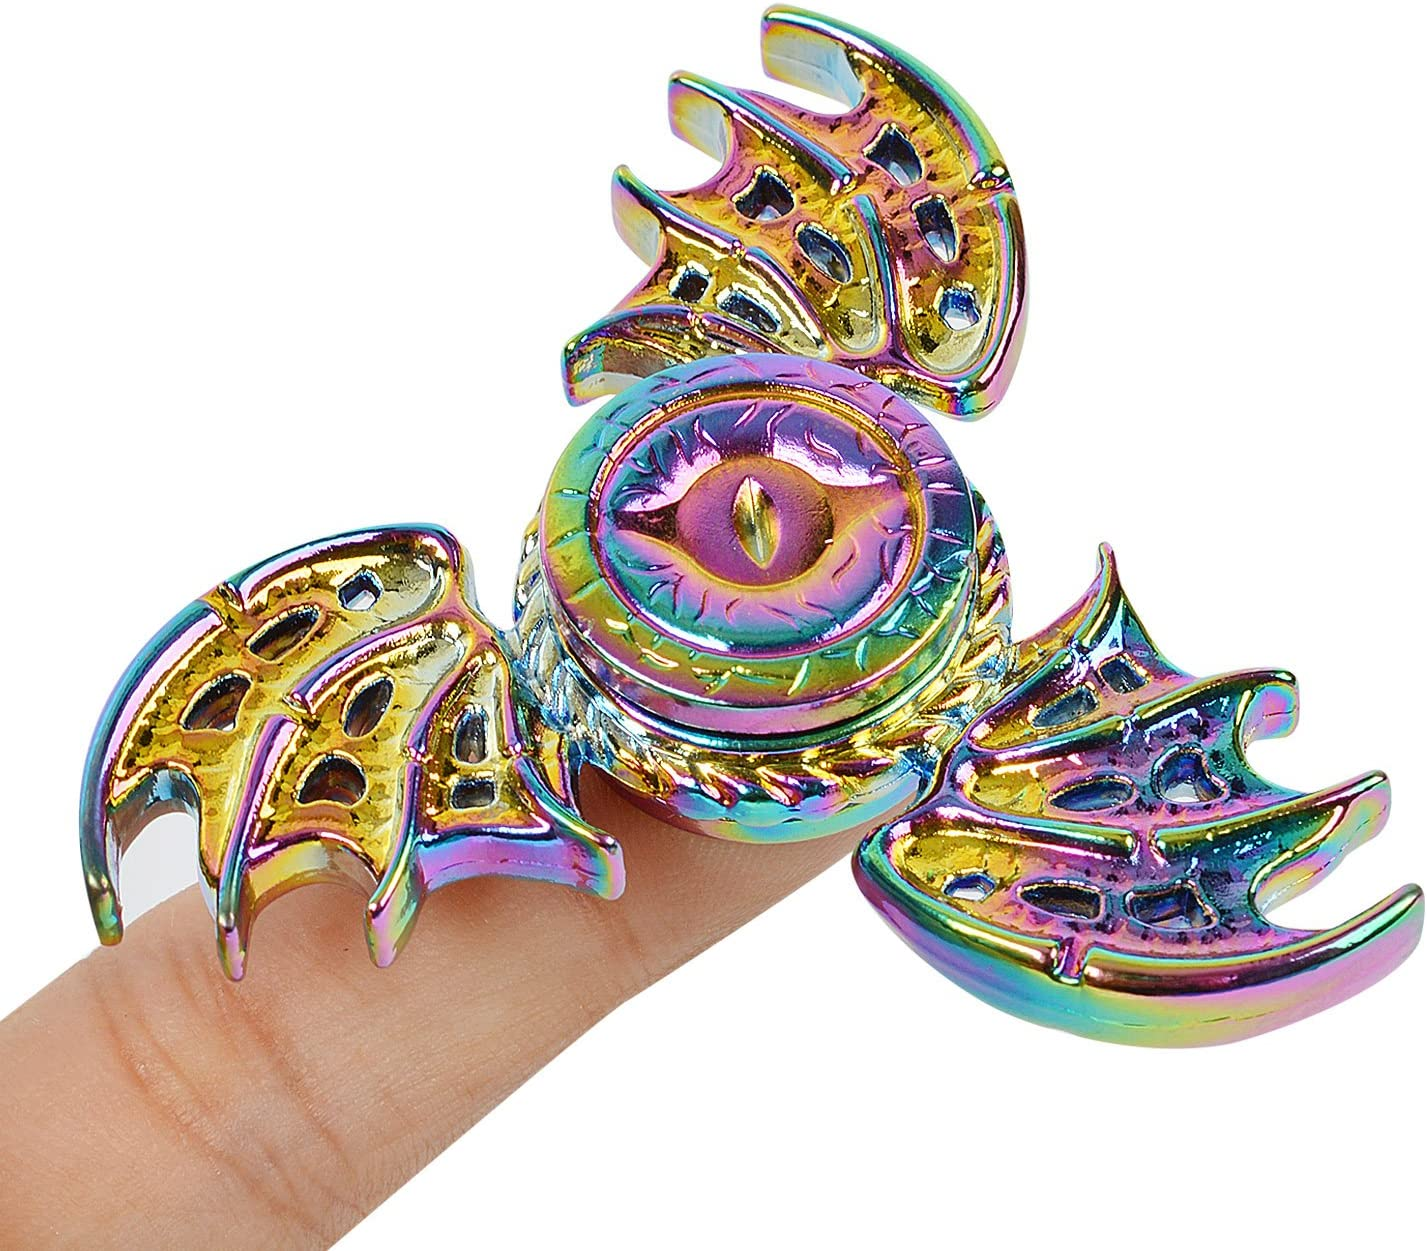 Phoenix Cool Dragon Snitch Fidget Hand Spinners Metal Fly Wing Focus Toy Stainless Steel Fingertip Gyro Stress Relief Spiral Twister ADHD EDC Toy Party Favors Birthday Gift for Kids Adults(Rainbow)